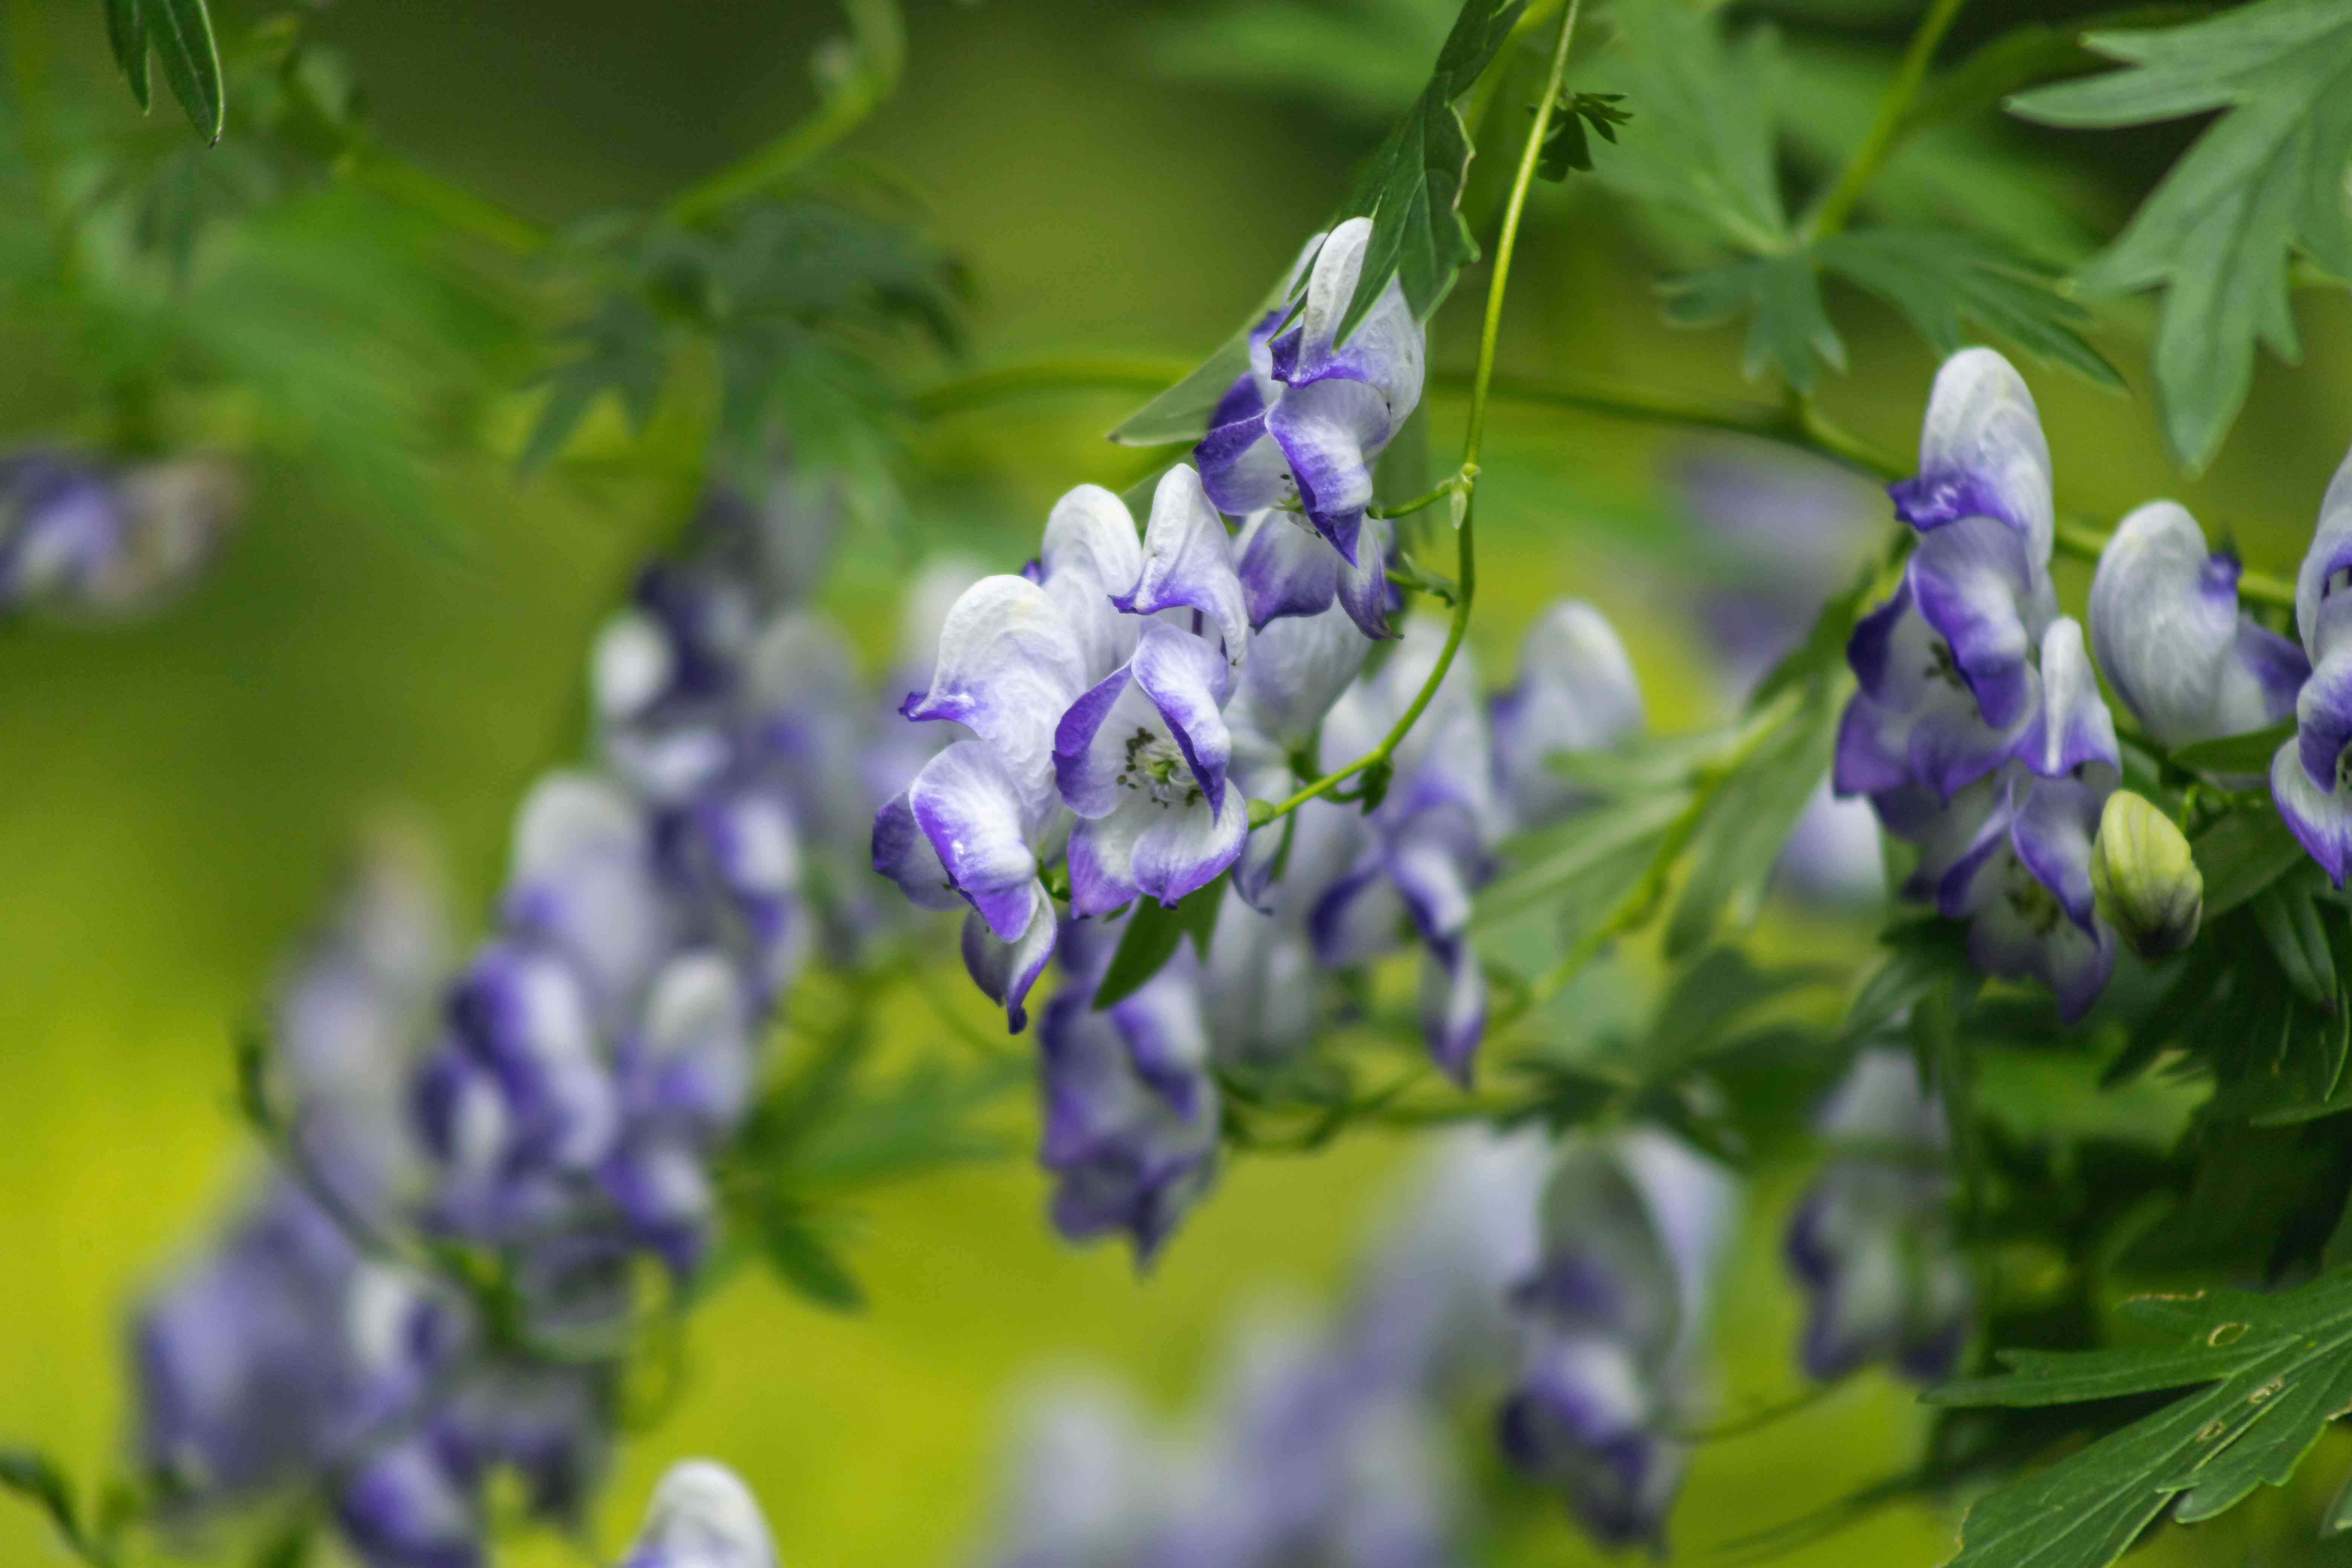 Monkshood plant with small white and purple-blue flowers hanging on thin stems